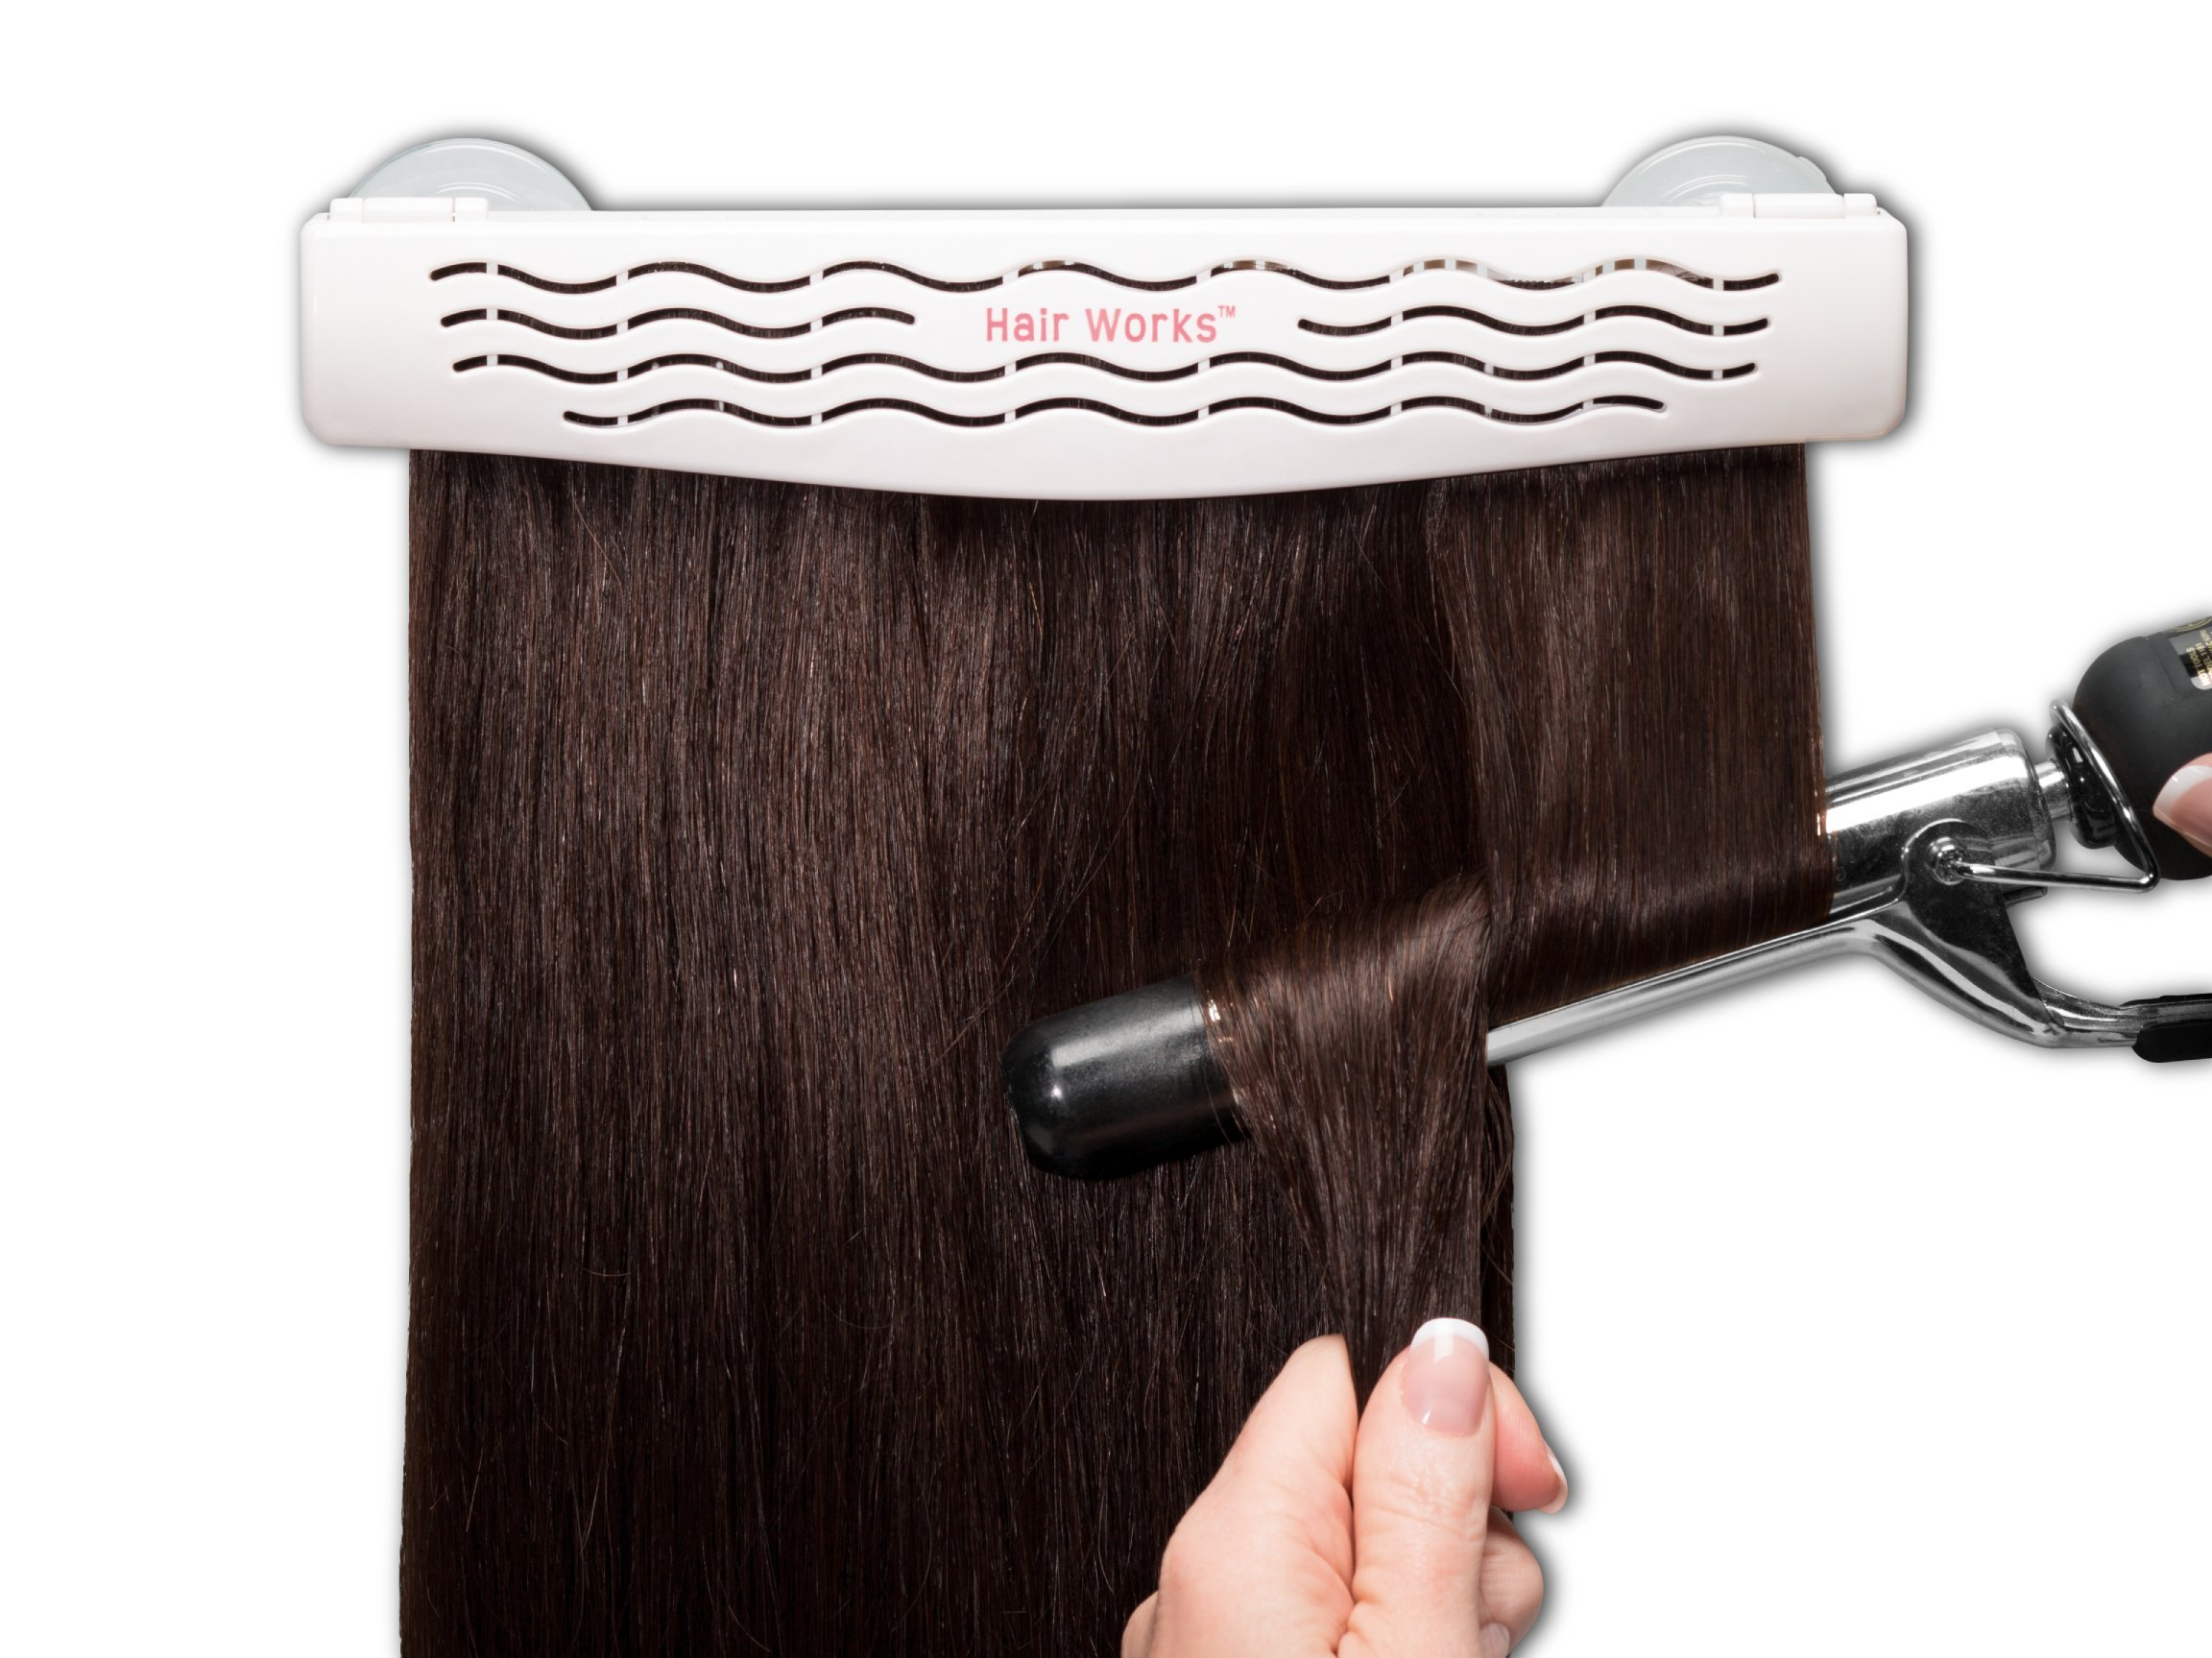 Hair Works 4-in-1 Hair Extension Style Caddy - Lightweight, Waterproof and Portable, This Hair Extension Holder Is Designed To Securely Hold Your Extensions While You Wash, Style, Pack and Store Them by Hair Works